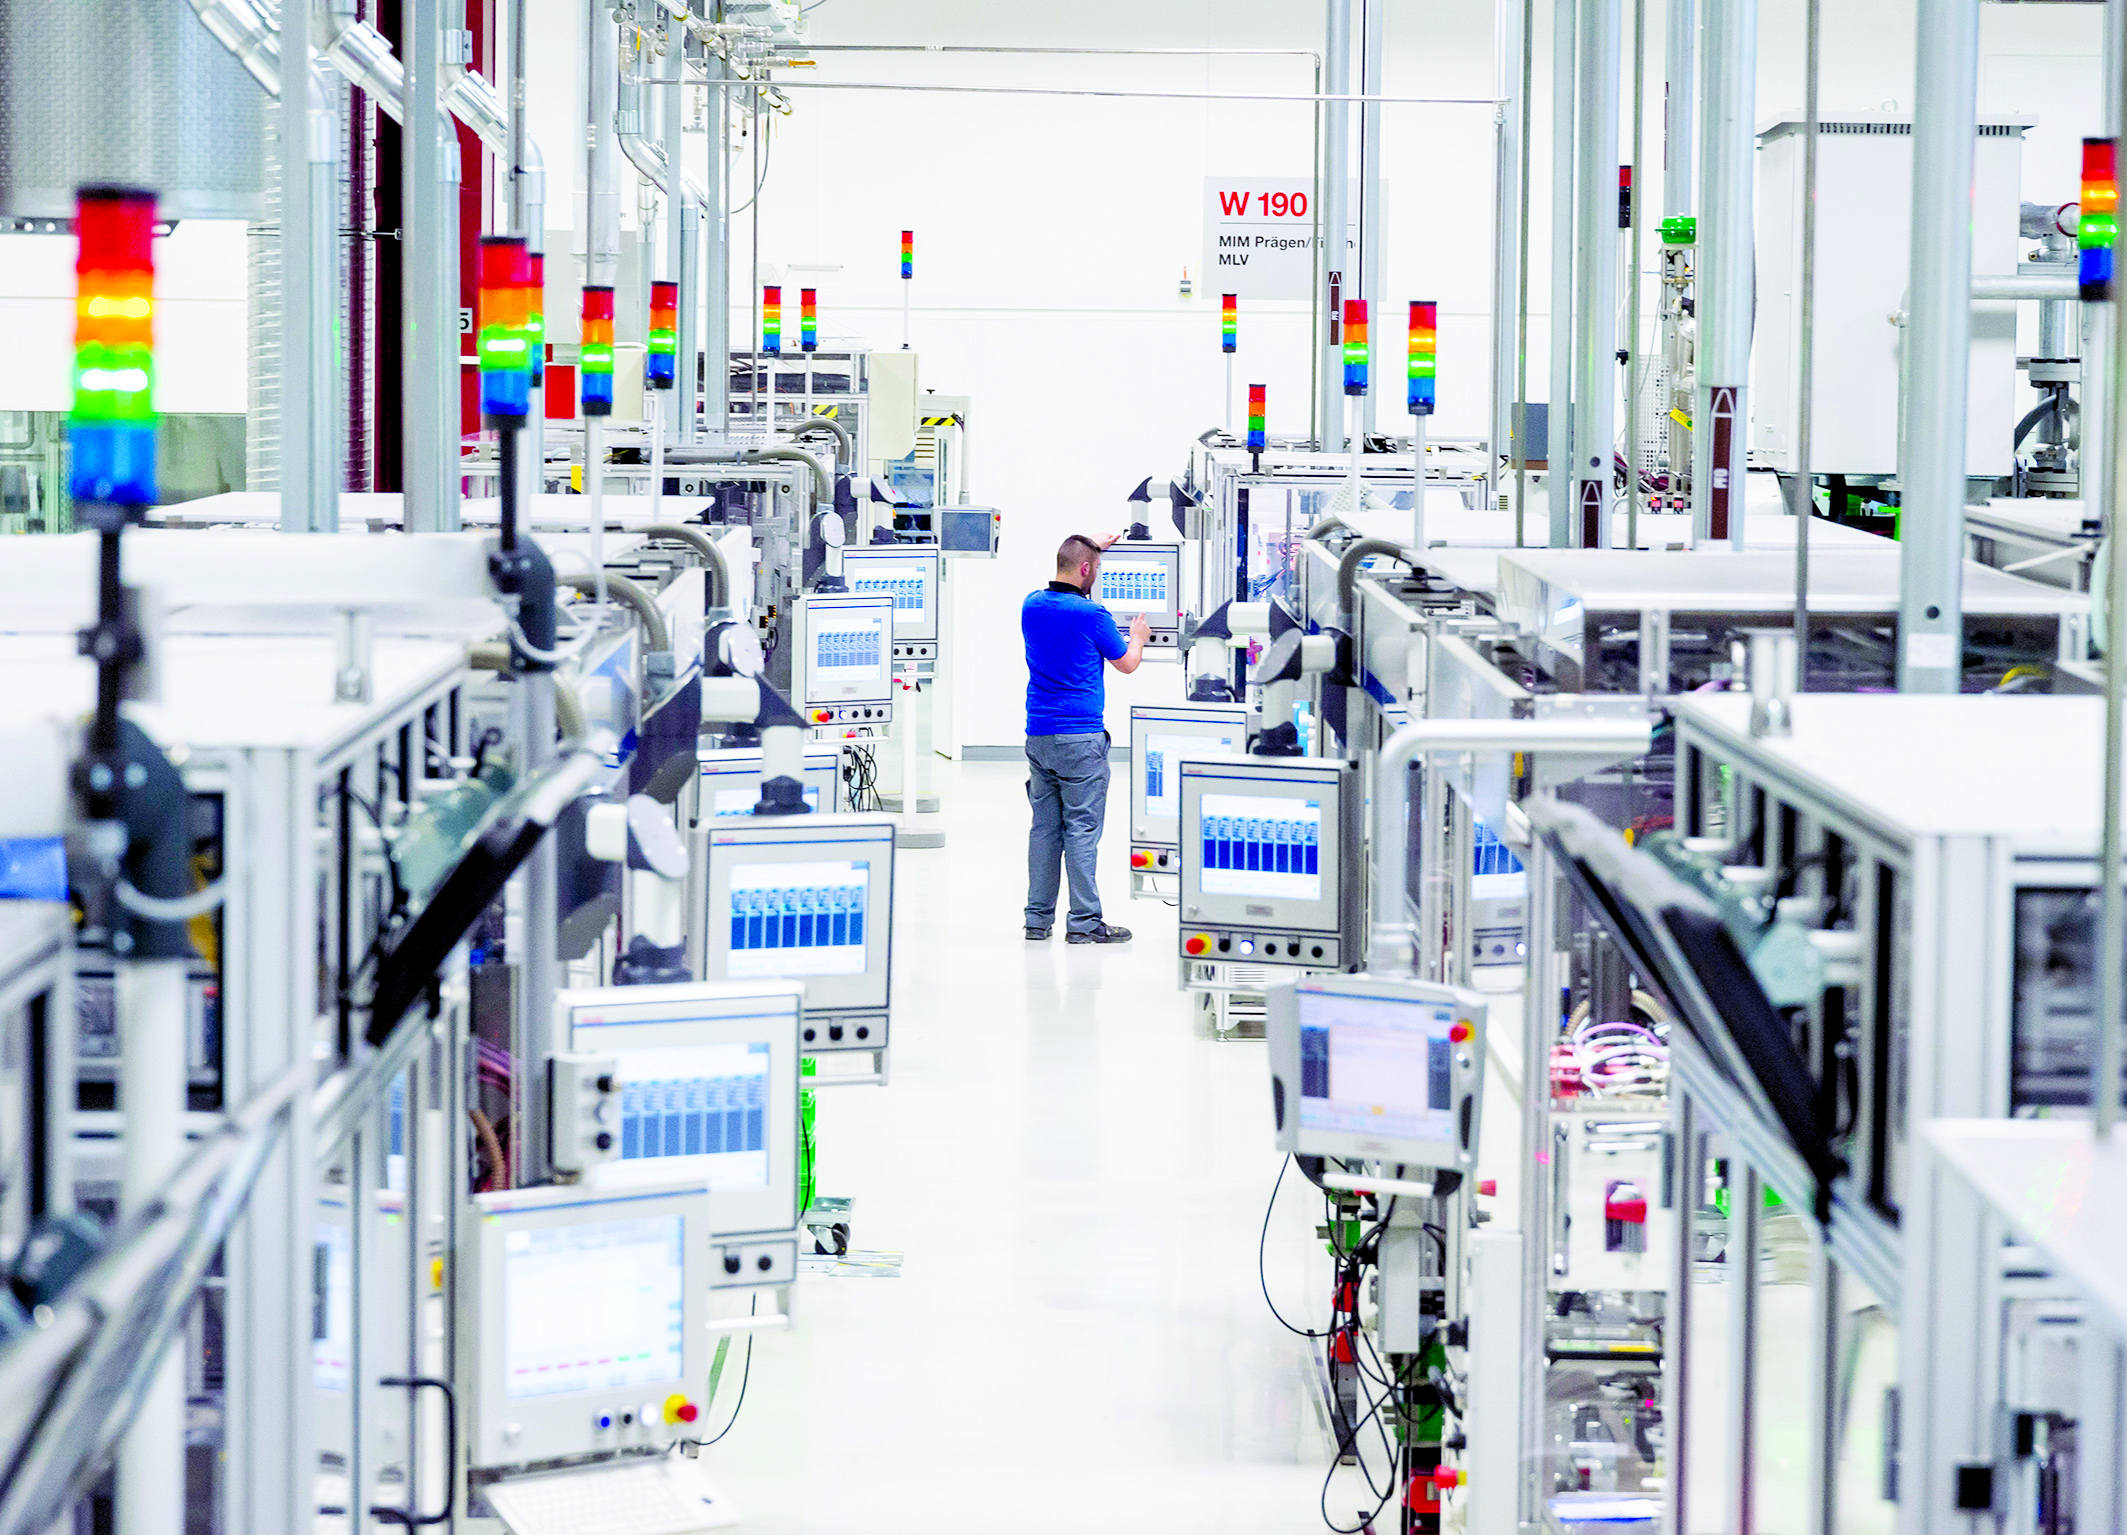 Bosch: betting big on Industry 4.0 solutions to drive growth